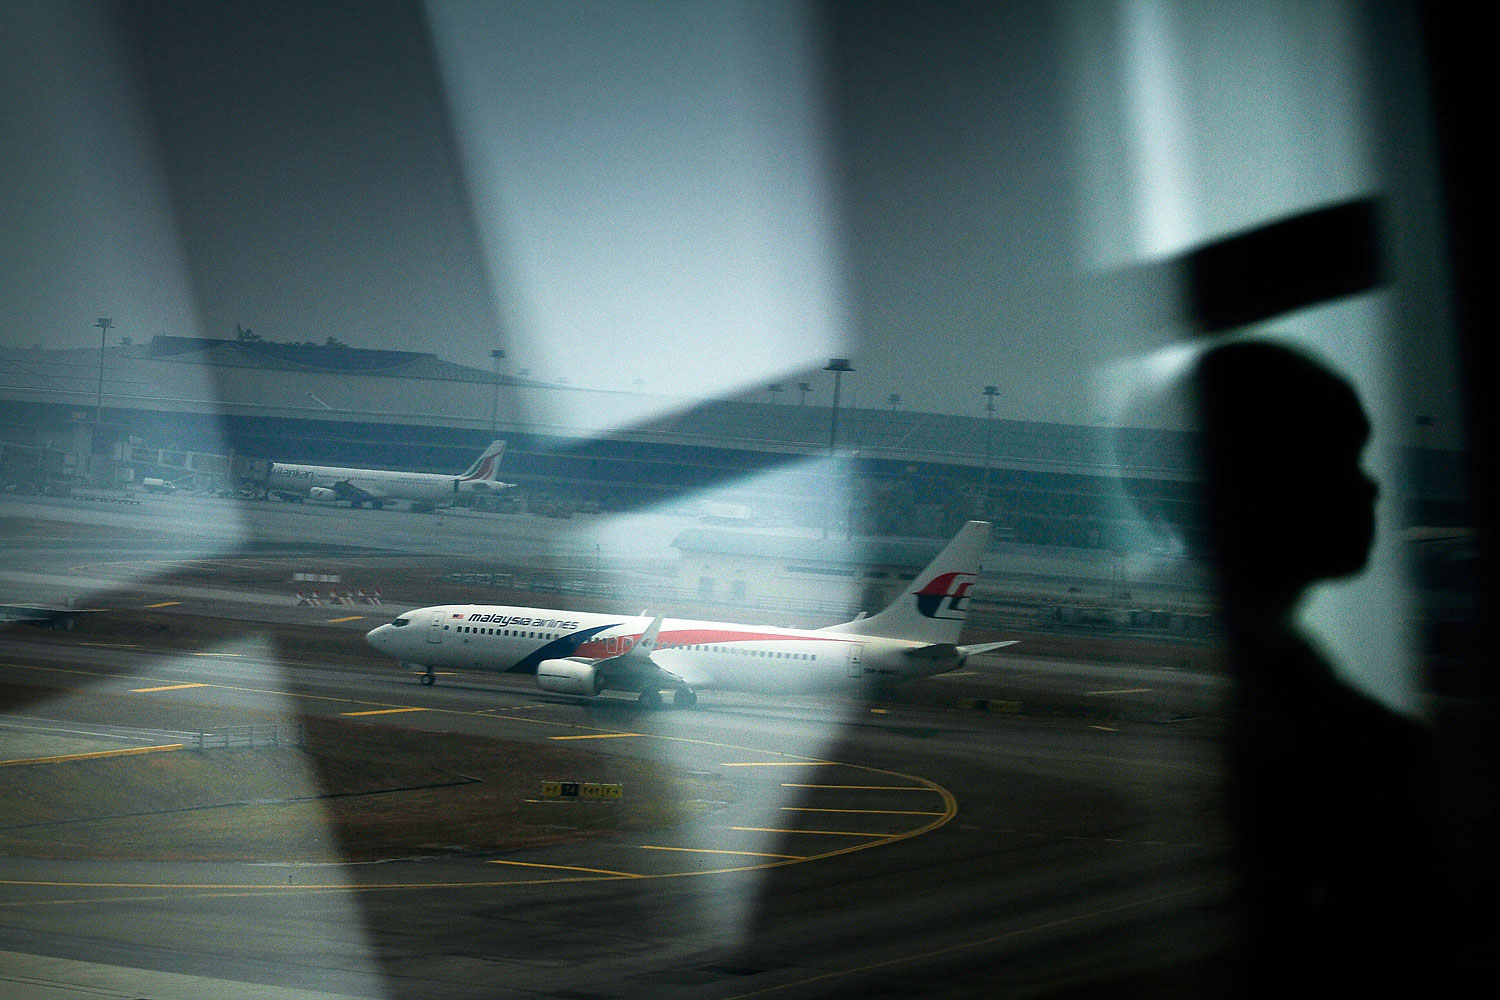 A Malaysian Airlines plane is seen on the tarmac at Kuala Lumpur International Airport on March 12, 2014 in Kuala Lumpur.